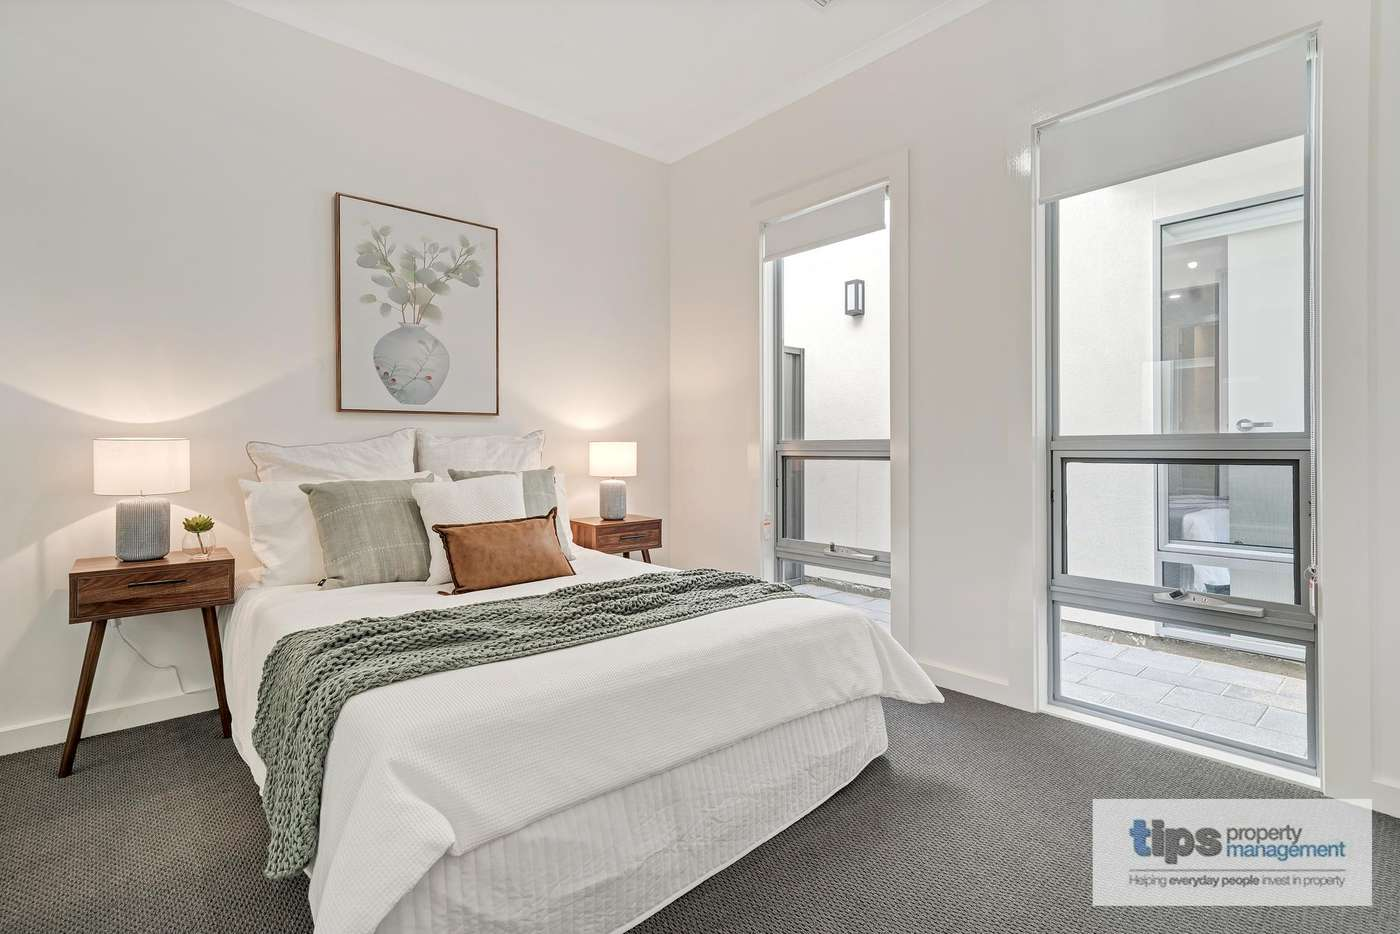 Fifth view of Homely house listing, 3C Norma St, Mile End SA 5031